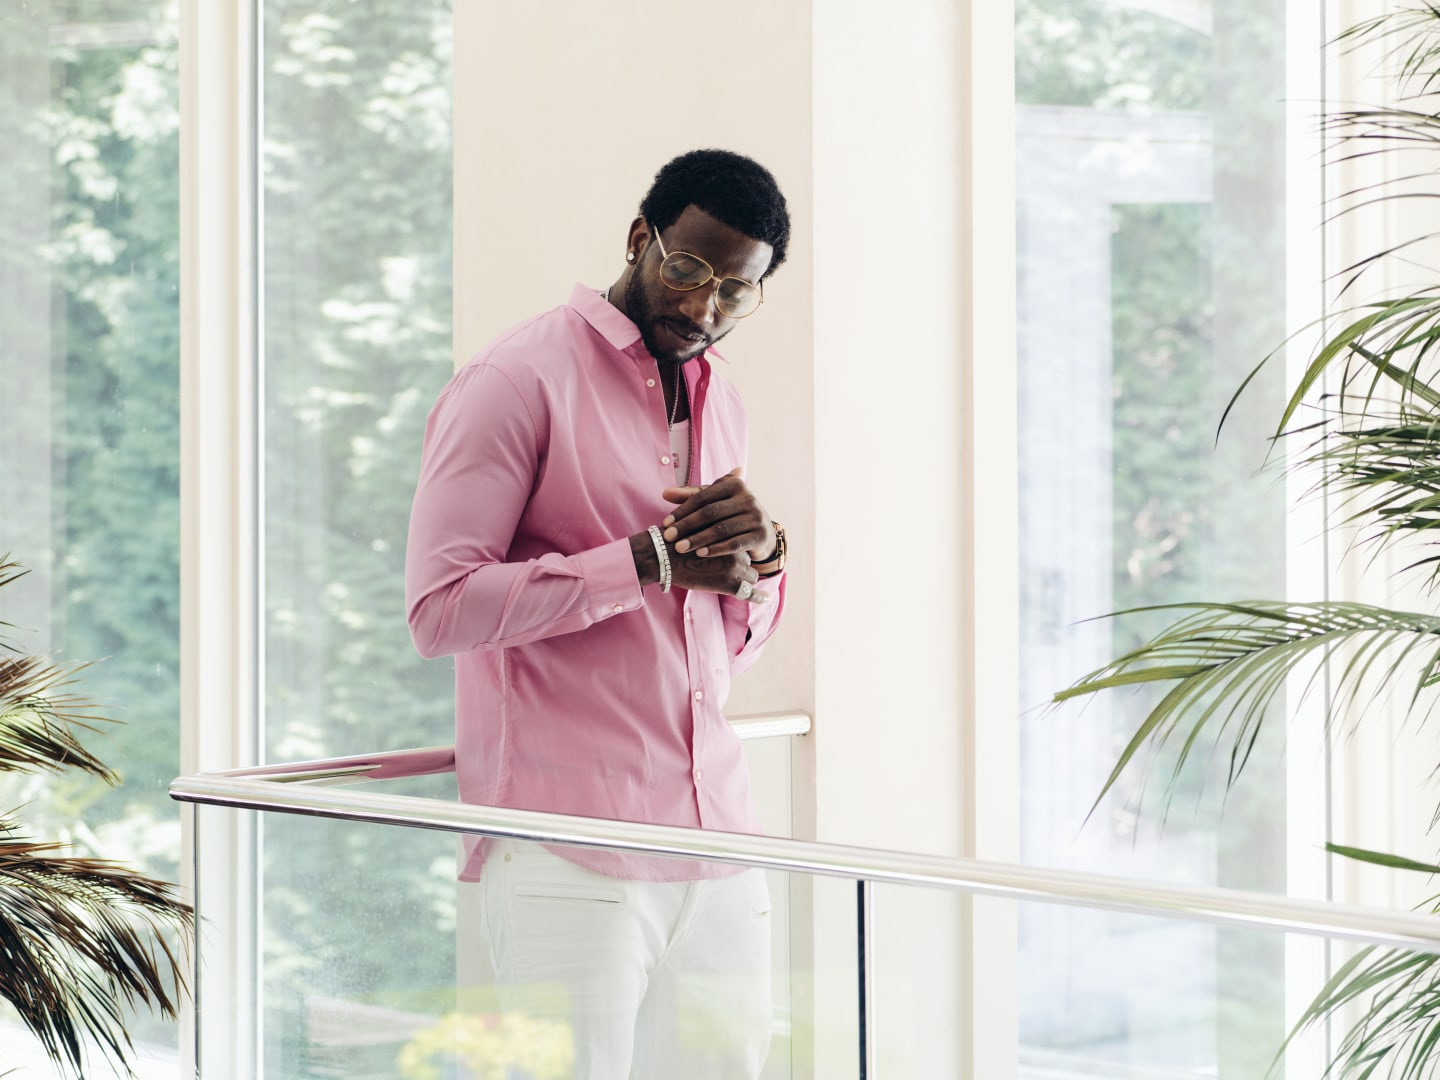 Gucci Free | The FADER